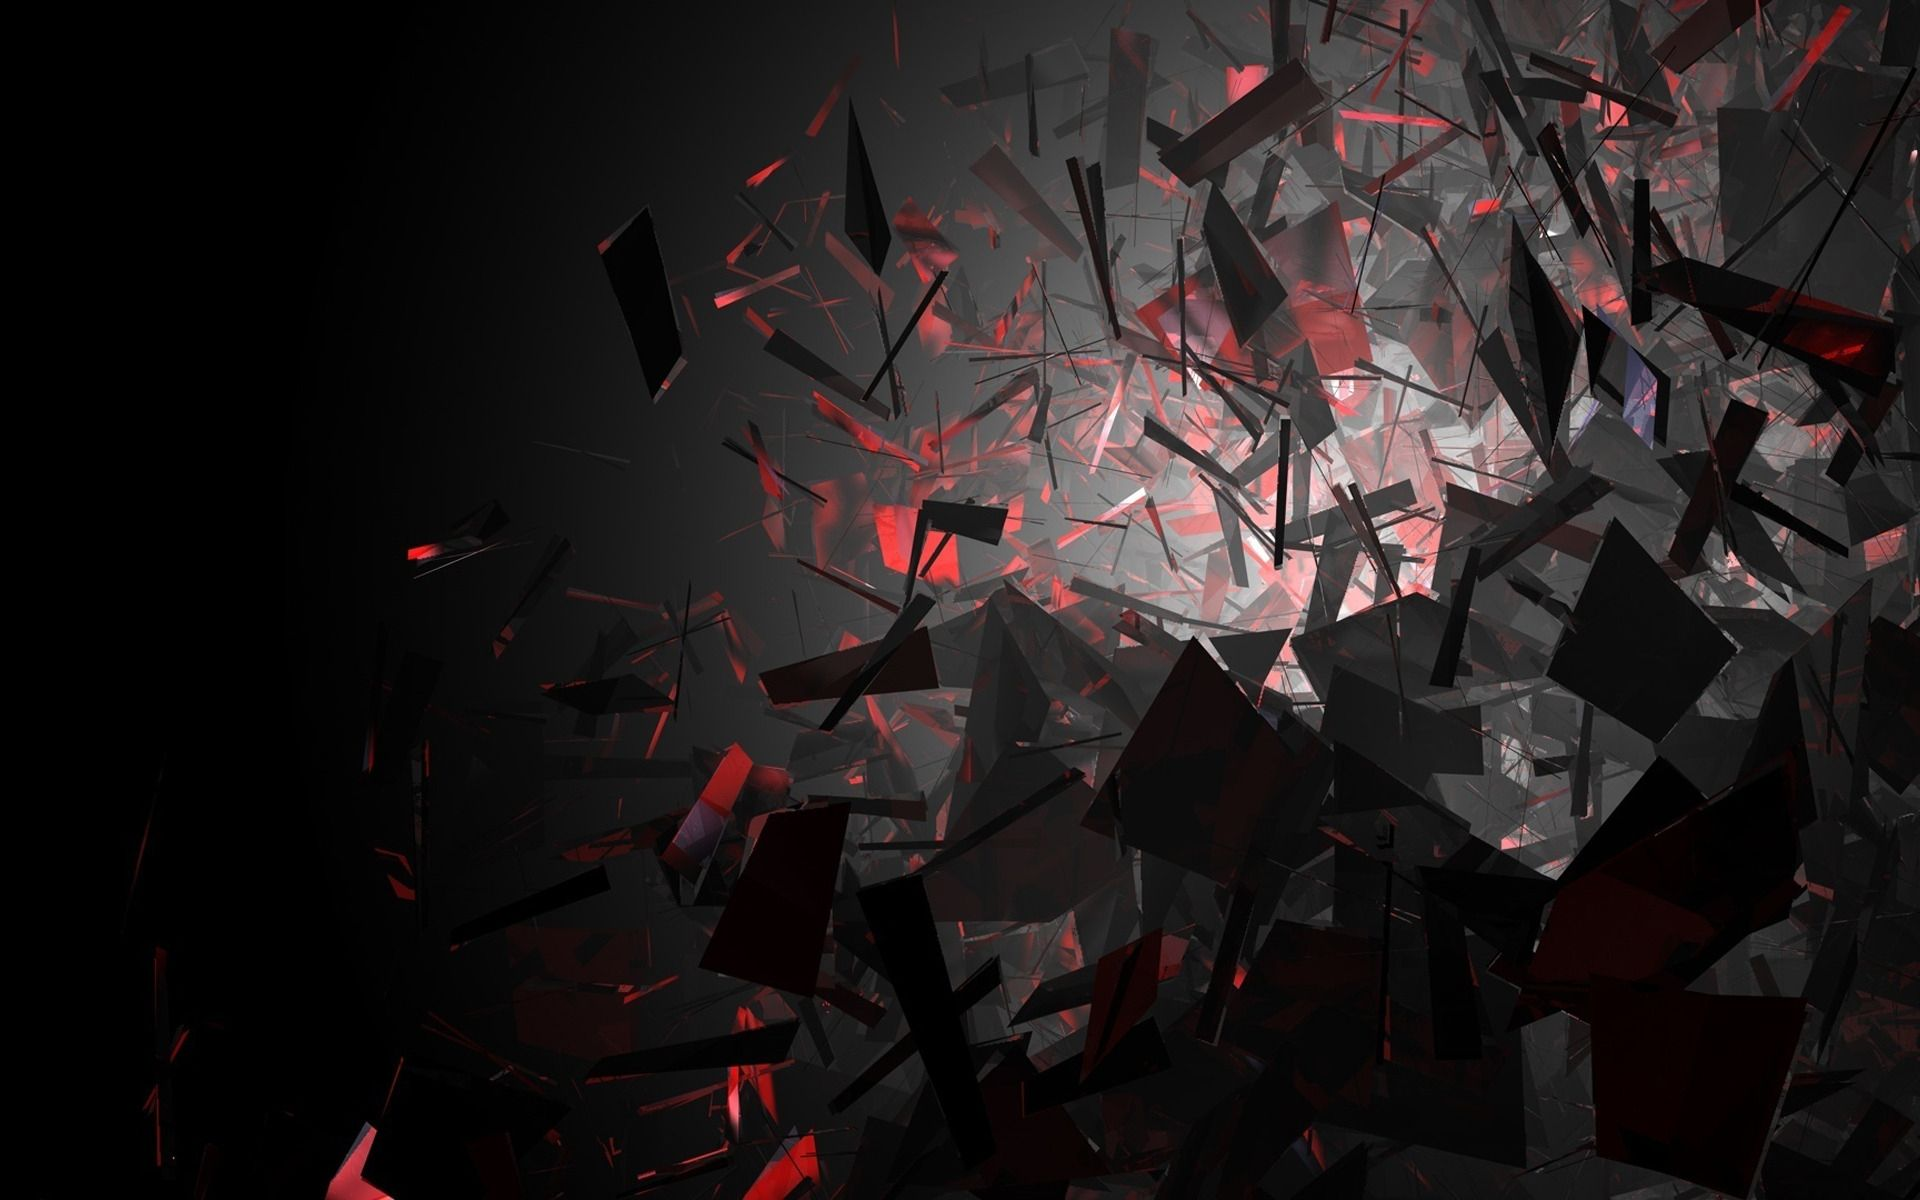 Red And Black Shards Wallpaper Posted By Michelle Peltier